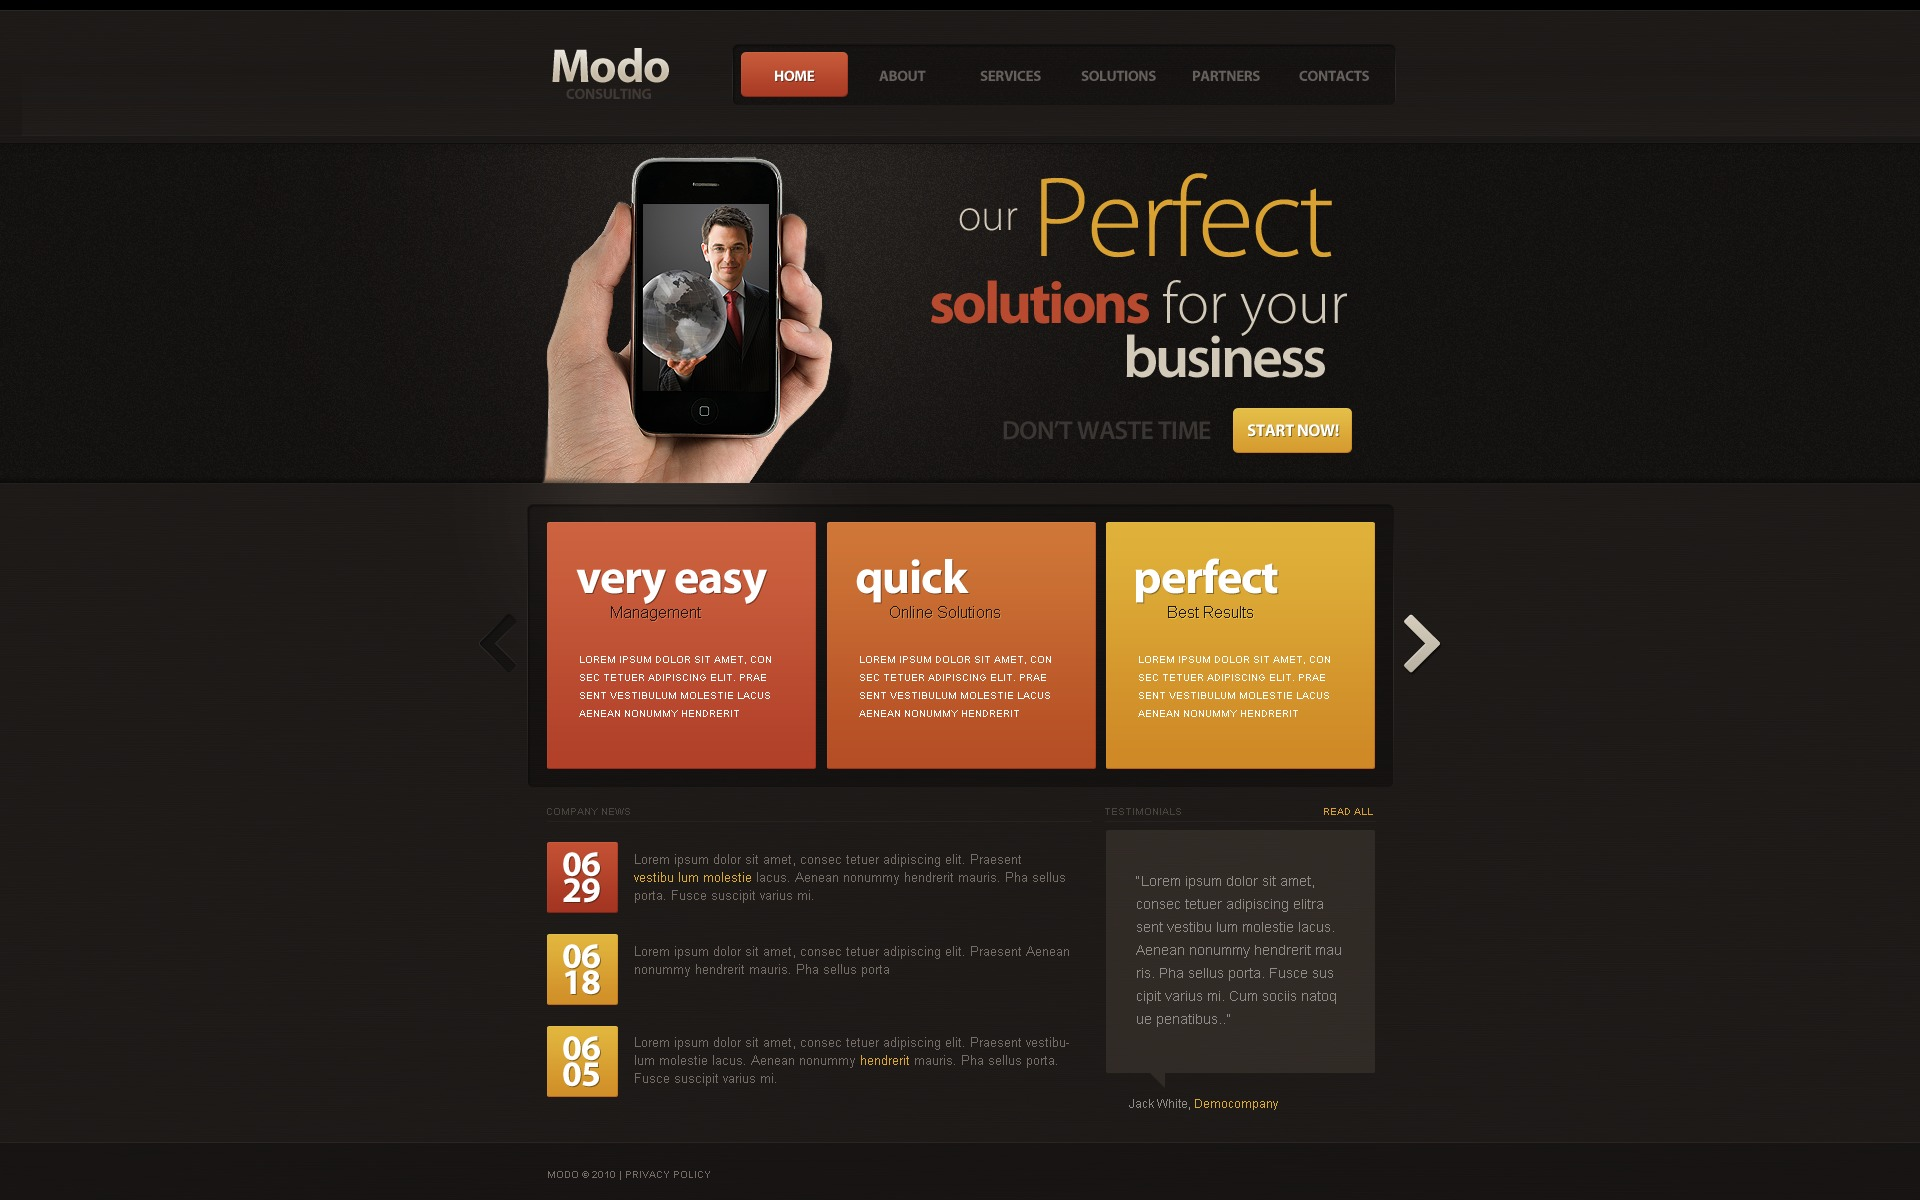 The Modo Business Company PSD Design 54099, one of the best PSD templates of its kind (business, wide, jquery), also known as modo business company PSD template, corporate solutions PSD template, innovations PSD template, contacts PSD template, service PSD template, support PSD template, information dealer PSD template, stocks PSD template, team PSD template, success PSD template, money PSD template, marketing PSD template, director PSD template, manager PSD template, analytics PSD template, planning PSD template, limited PSD template, office PSD template, sales and related with modo business company, corporate solutions, innovations, contacts, service, support, information dealer, stocks, team, success, money, marketing, director, manager, analytics, planning, limited, office, sales, etc.